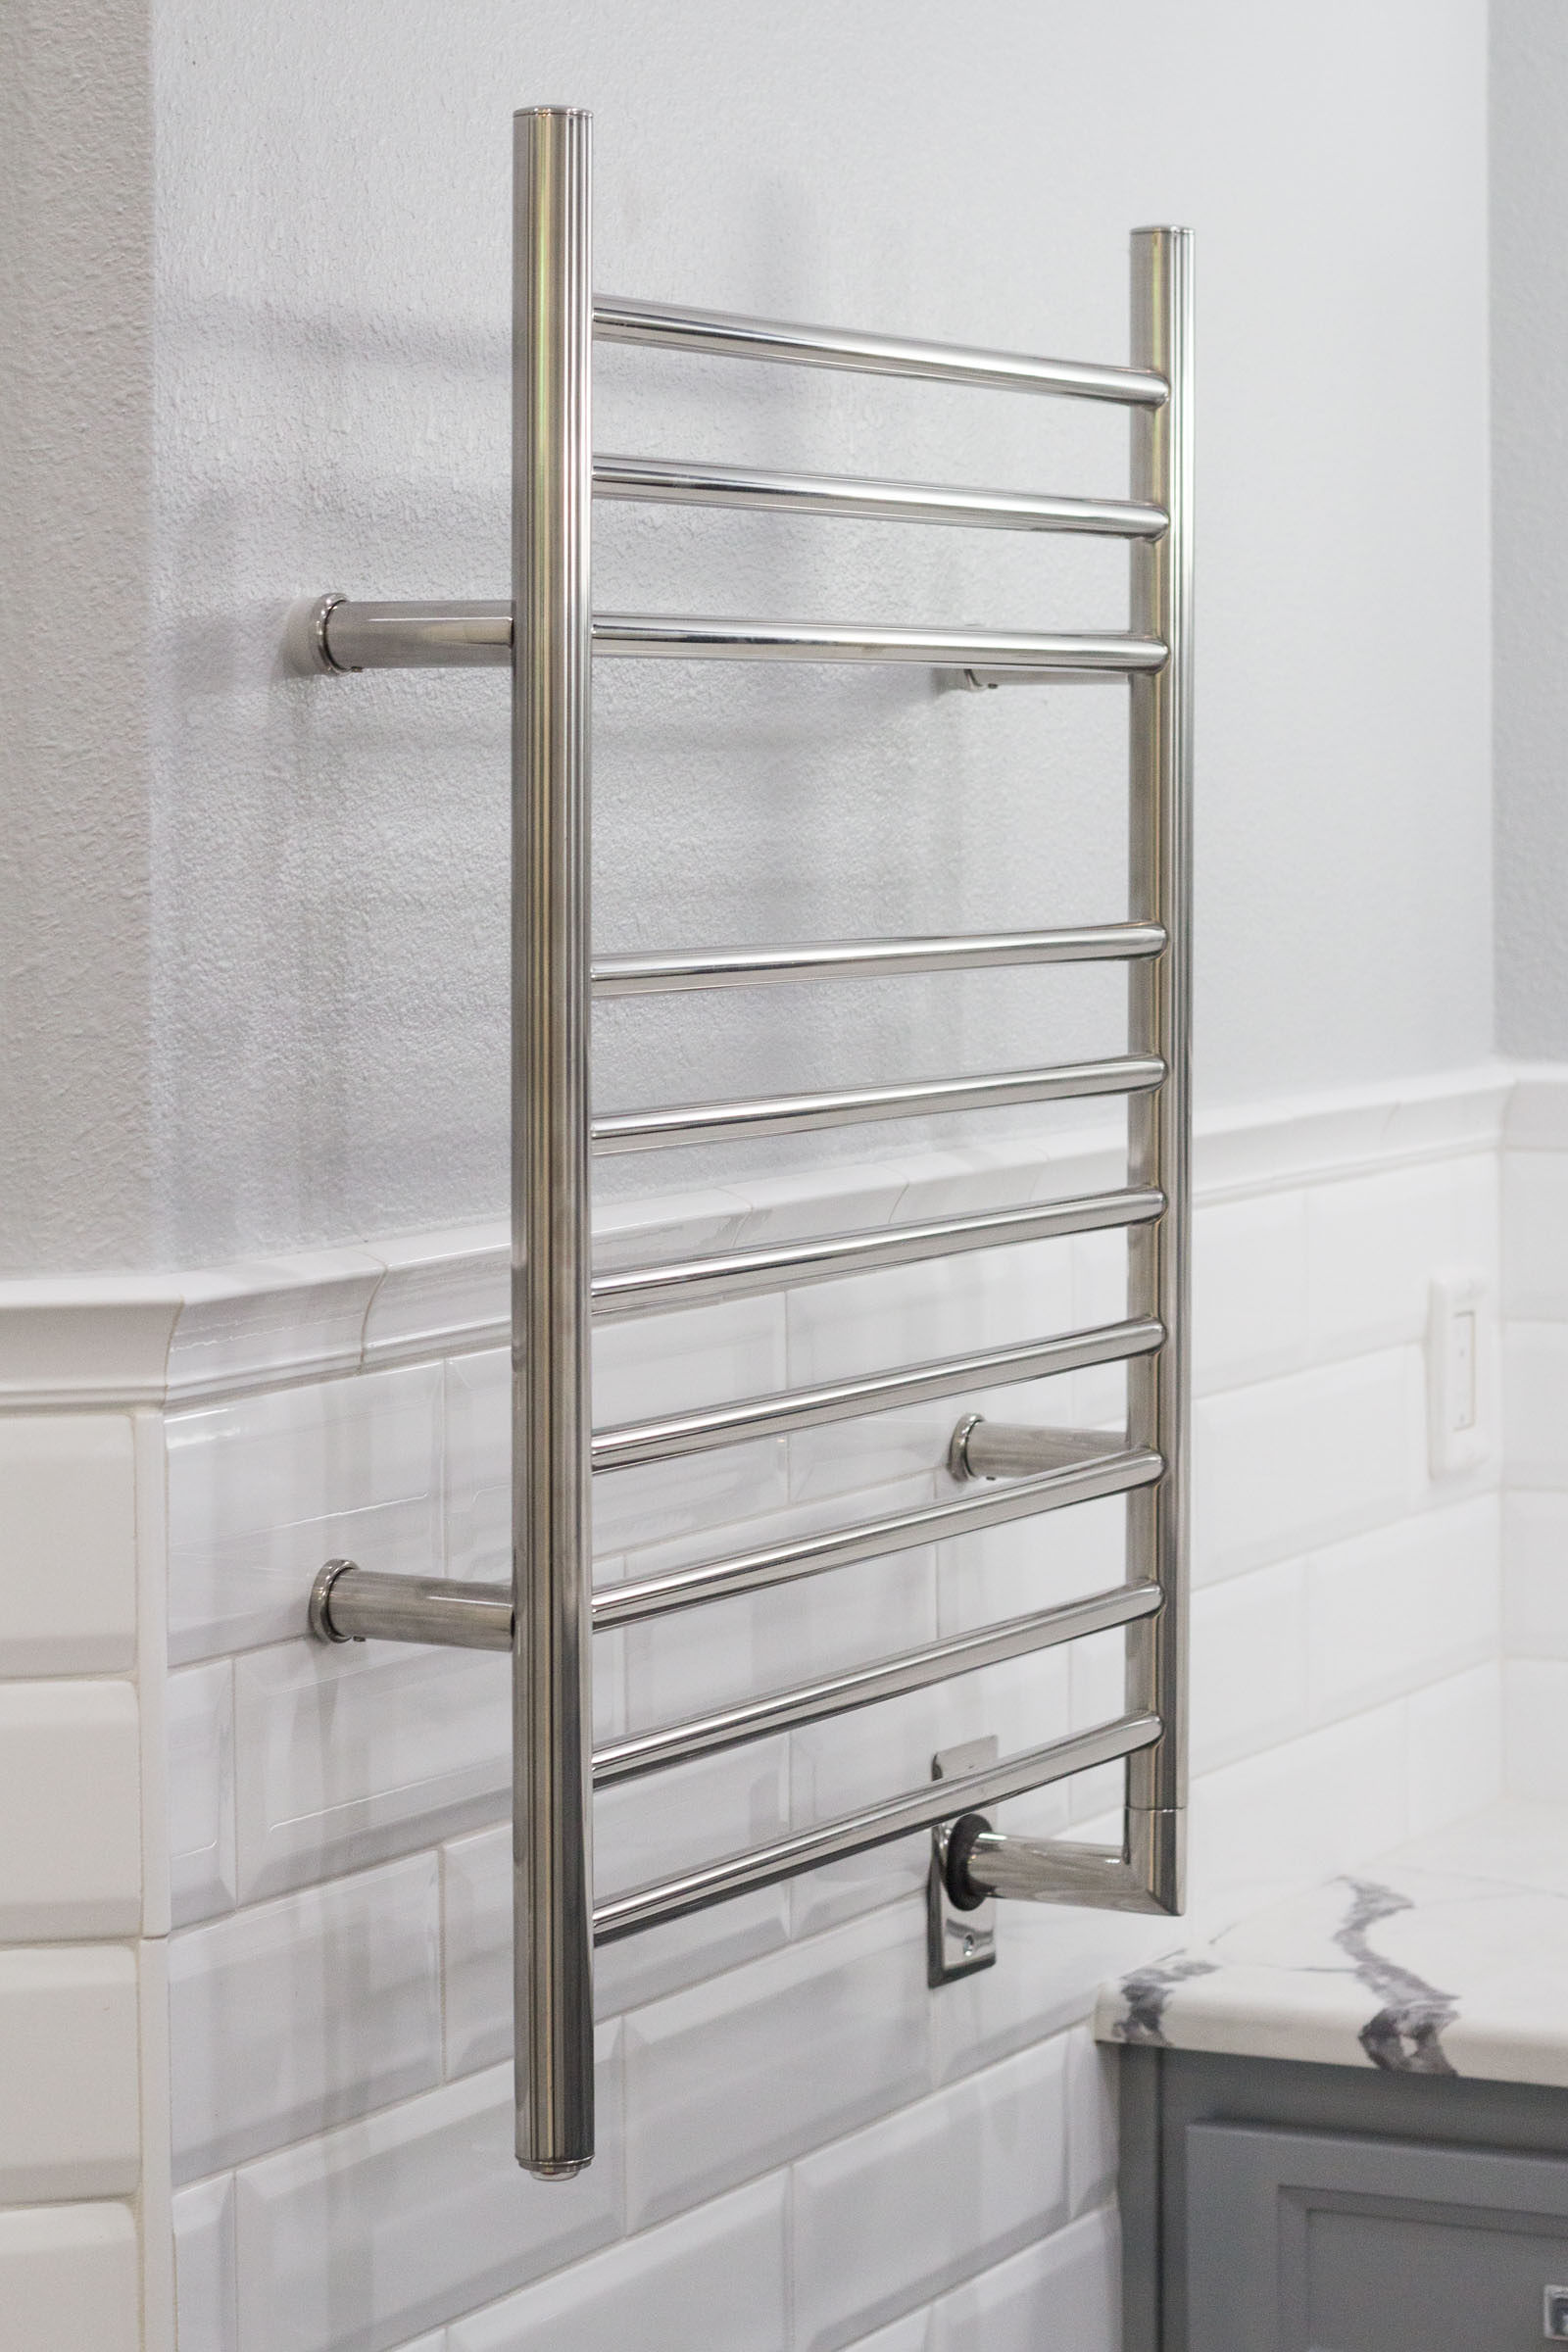 Chrome towel rack with white subway tile backsplash and light grey walls